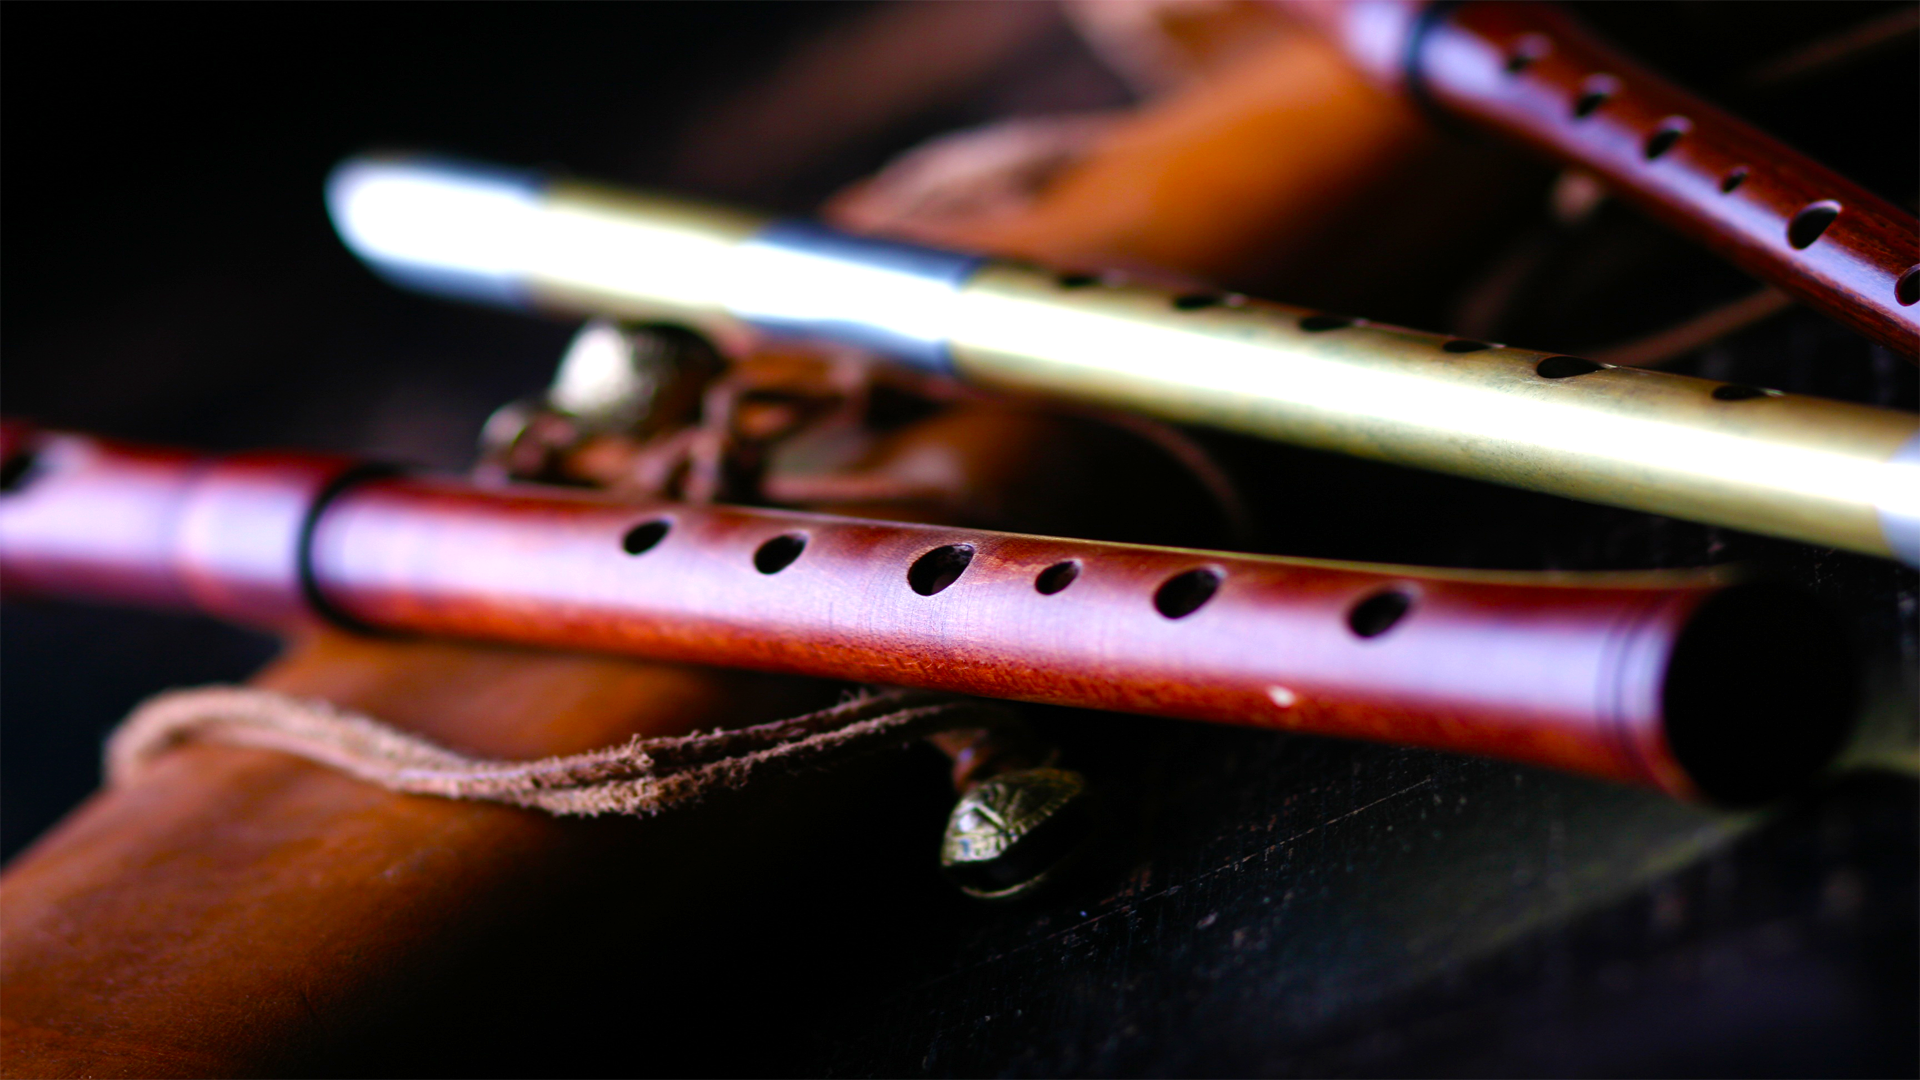 Flute Music for Meditation- The Benefits You Should Know